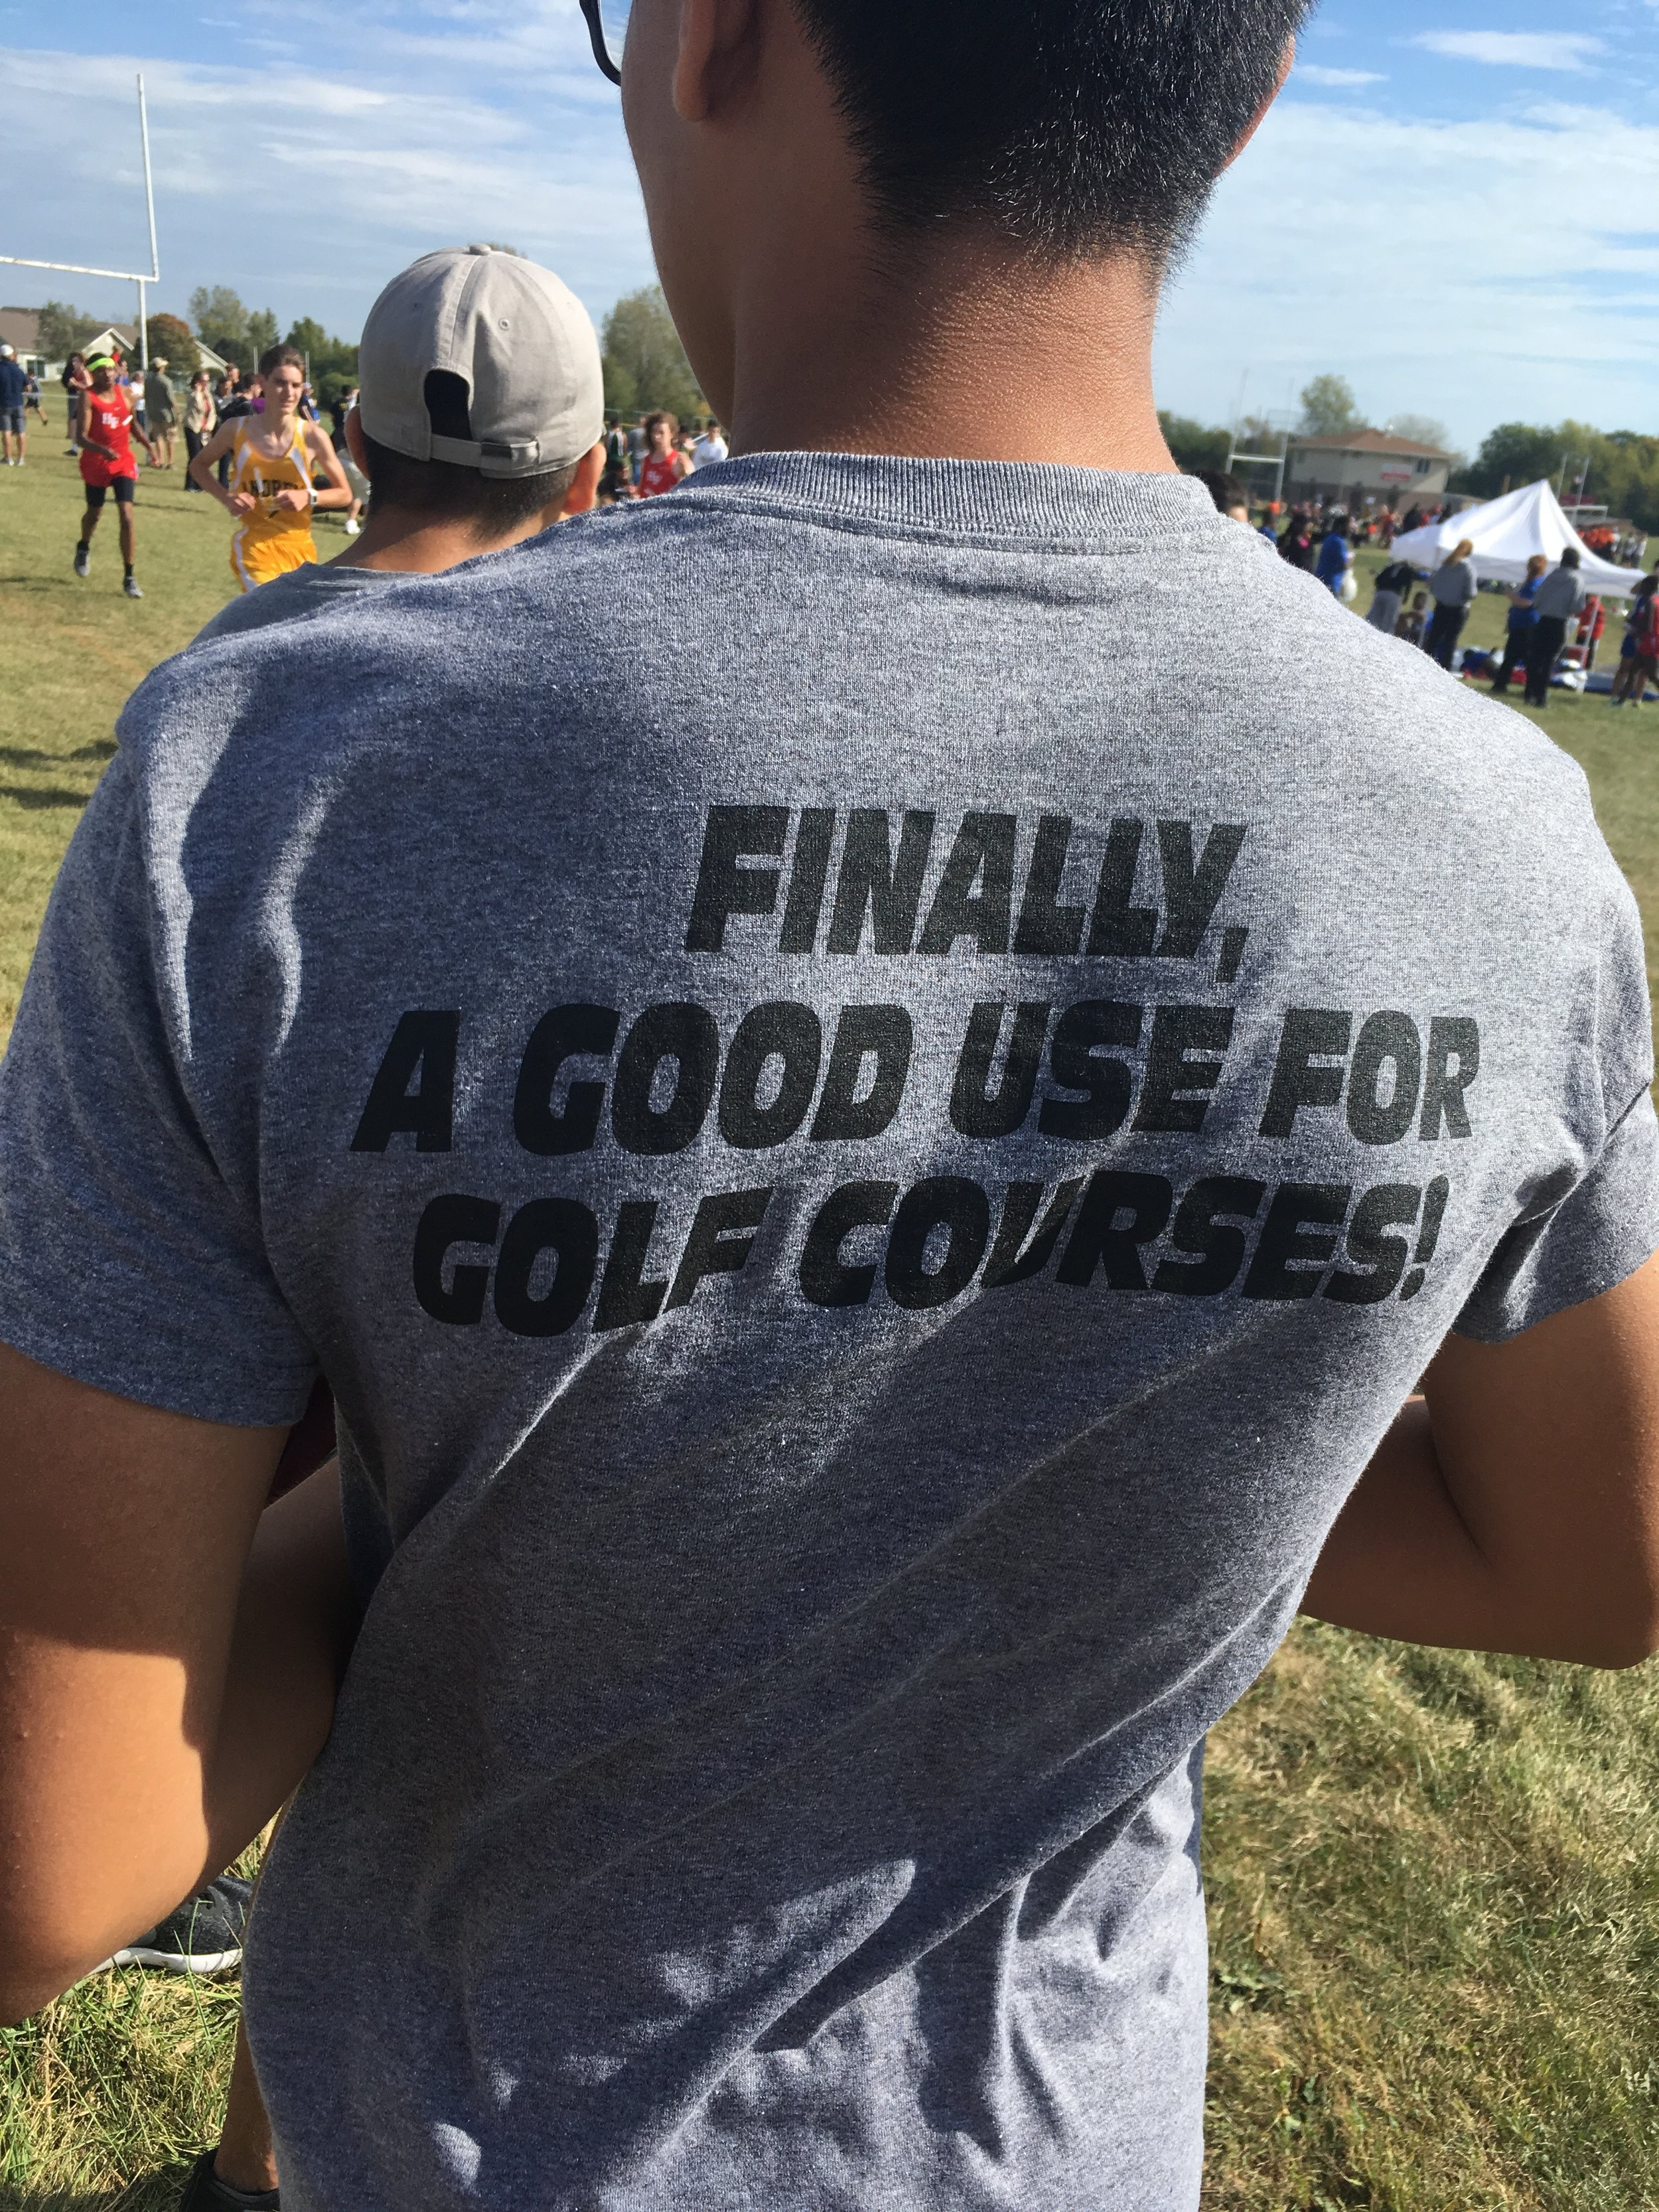 Seen at XC meet.  I approve this message